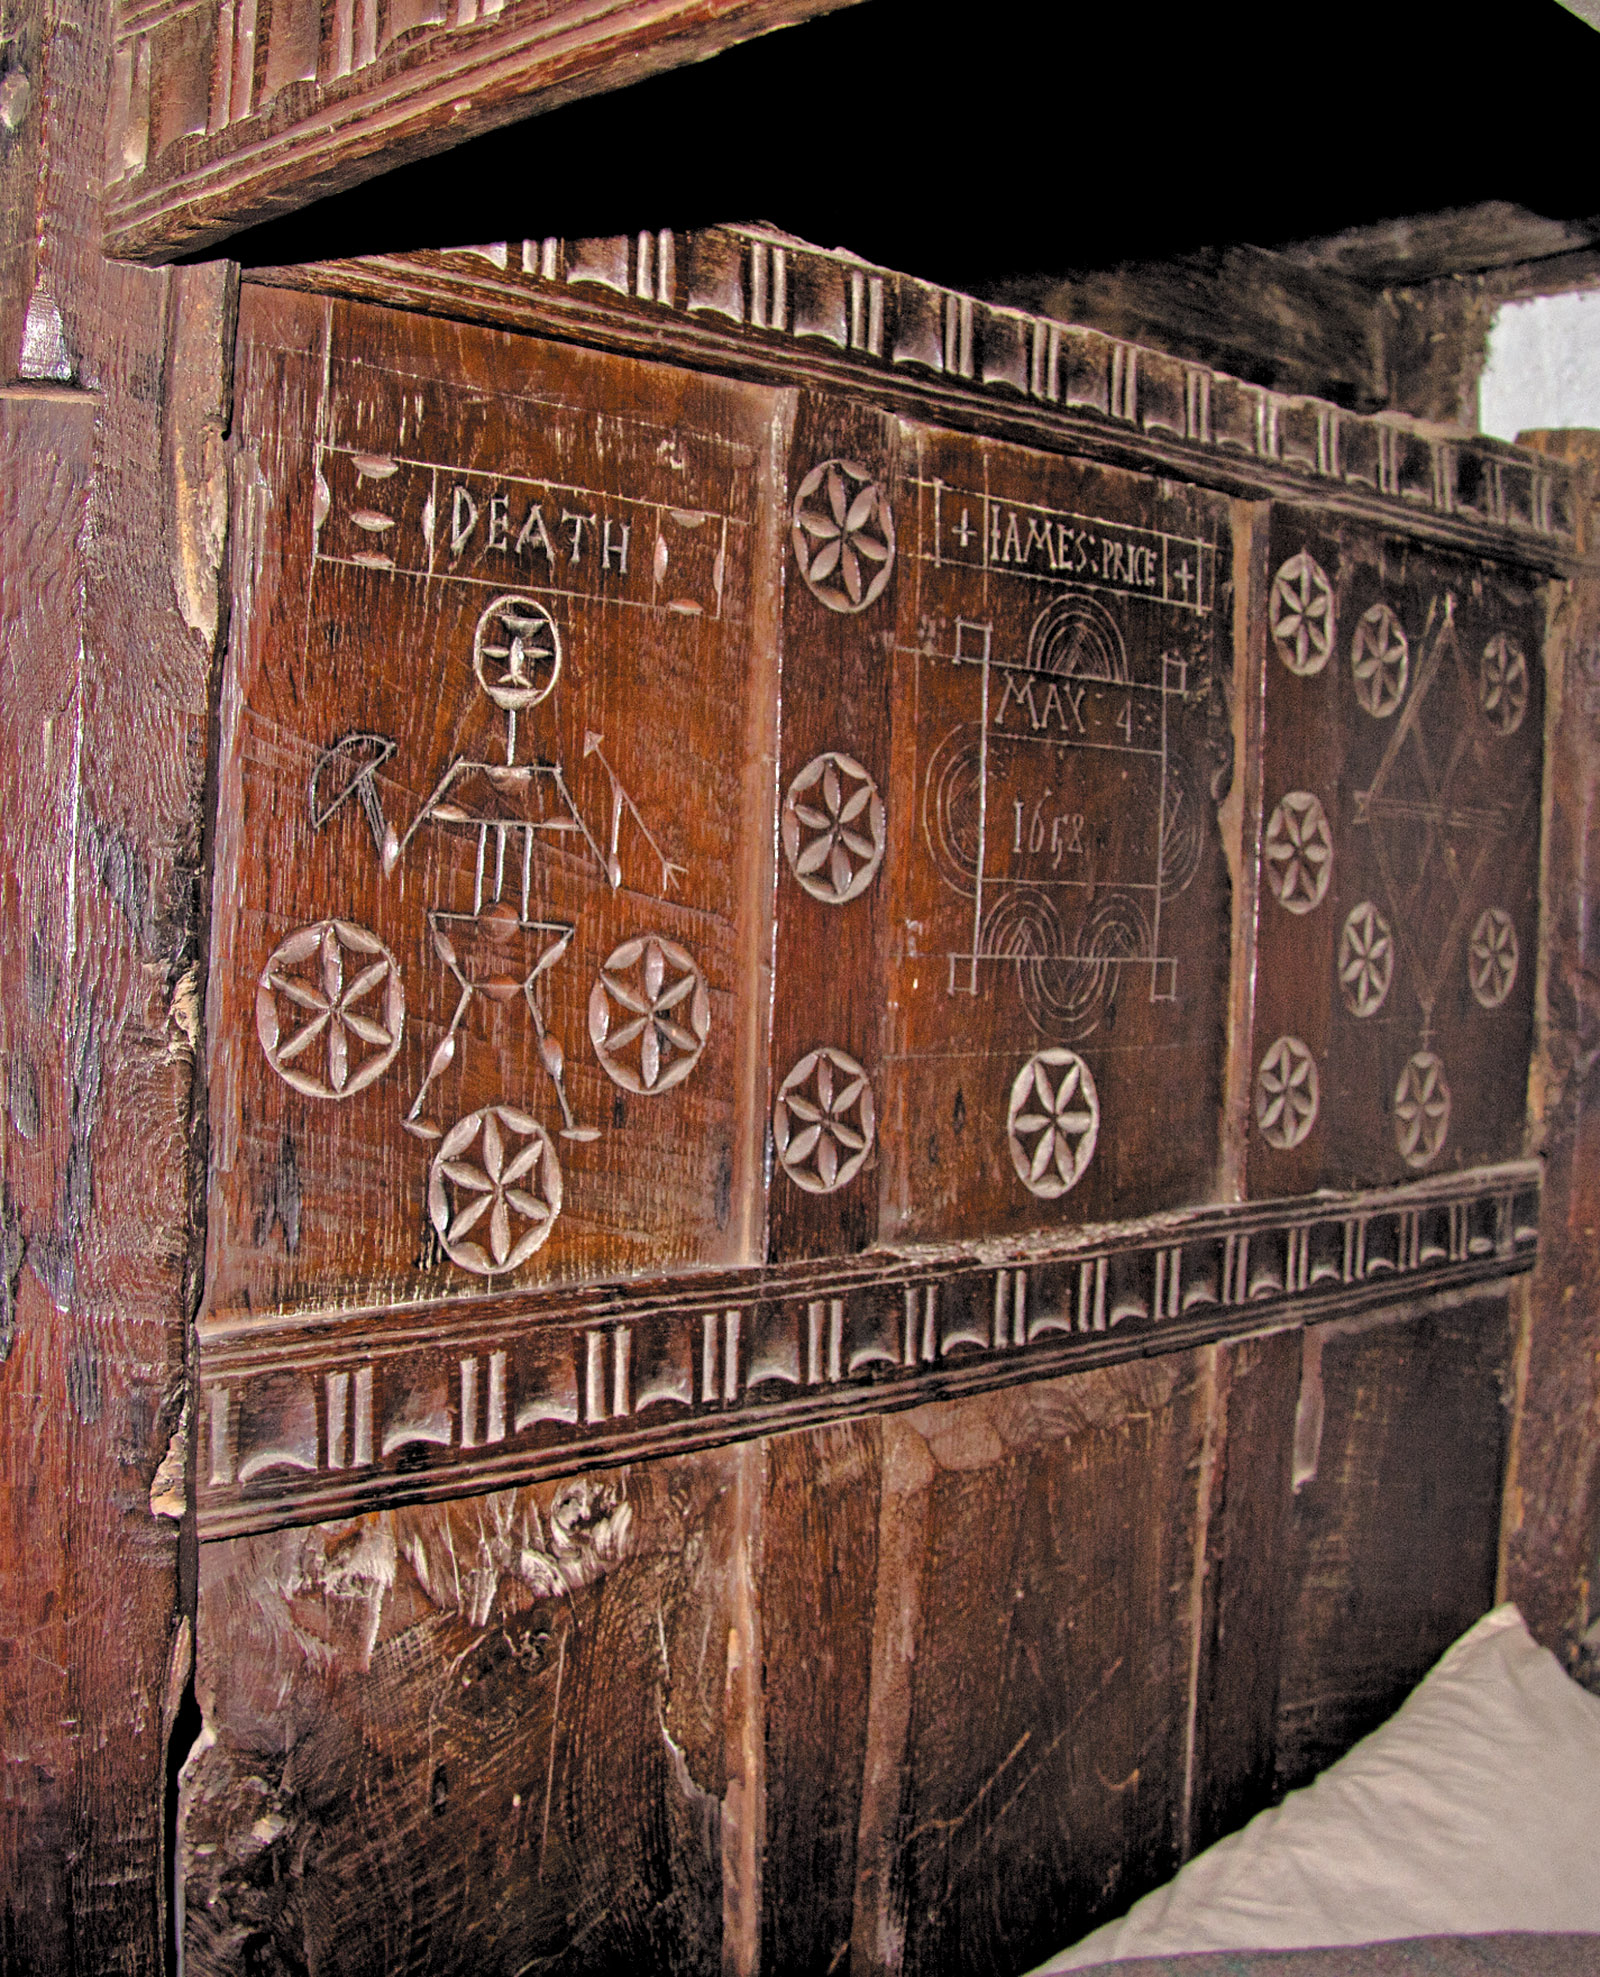 A headboard from a Welsh farmhouse engraved with symbols